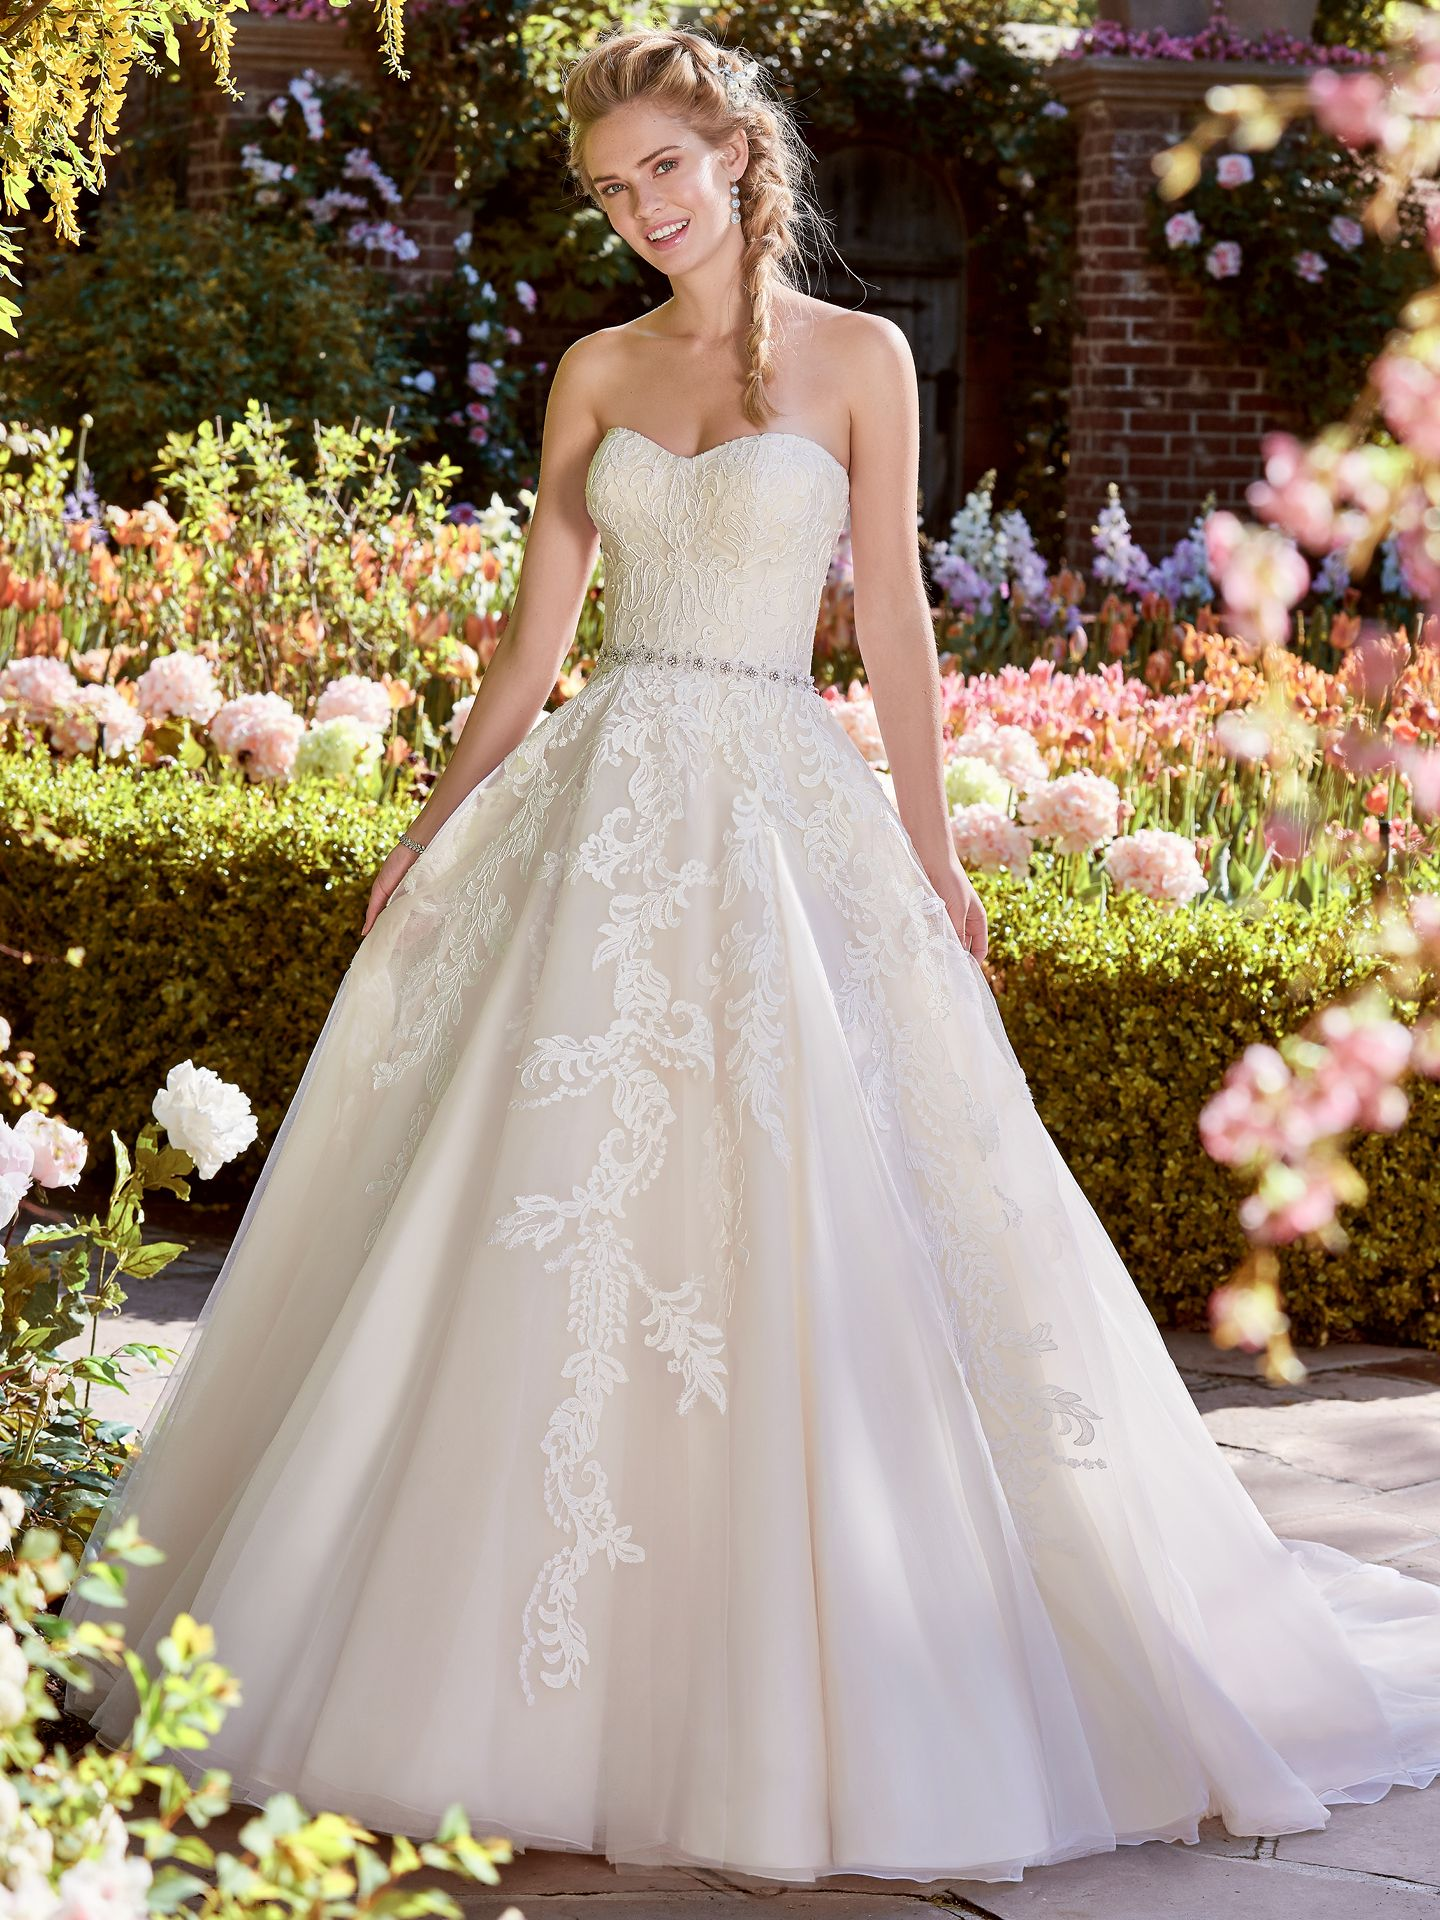 Bernice wedding dress by Rebecca Ingram. Modern Royalty: Wedding Dresses Inspired by the Royal Engagement